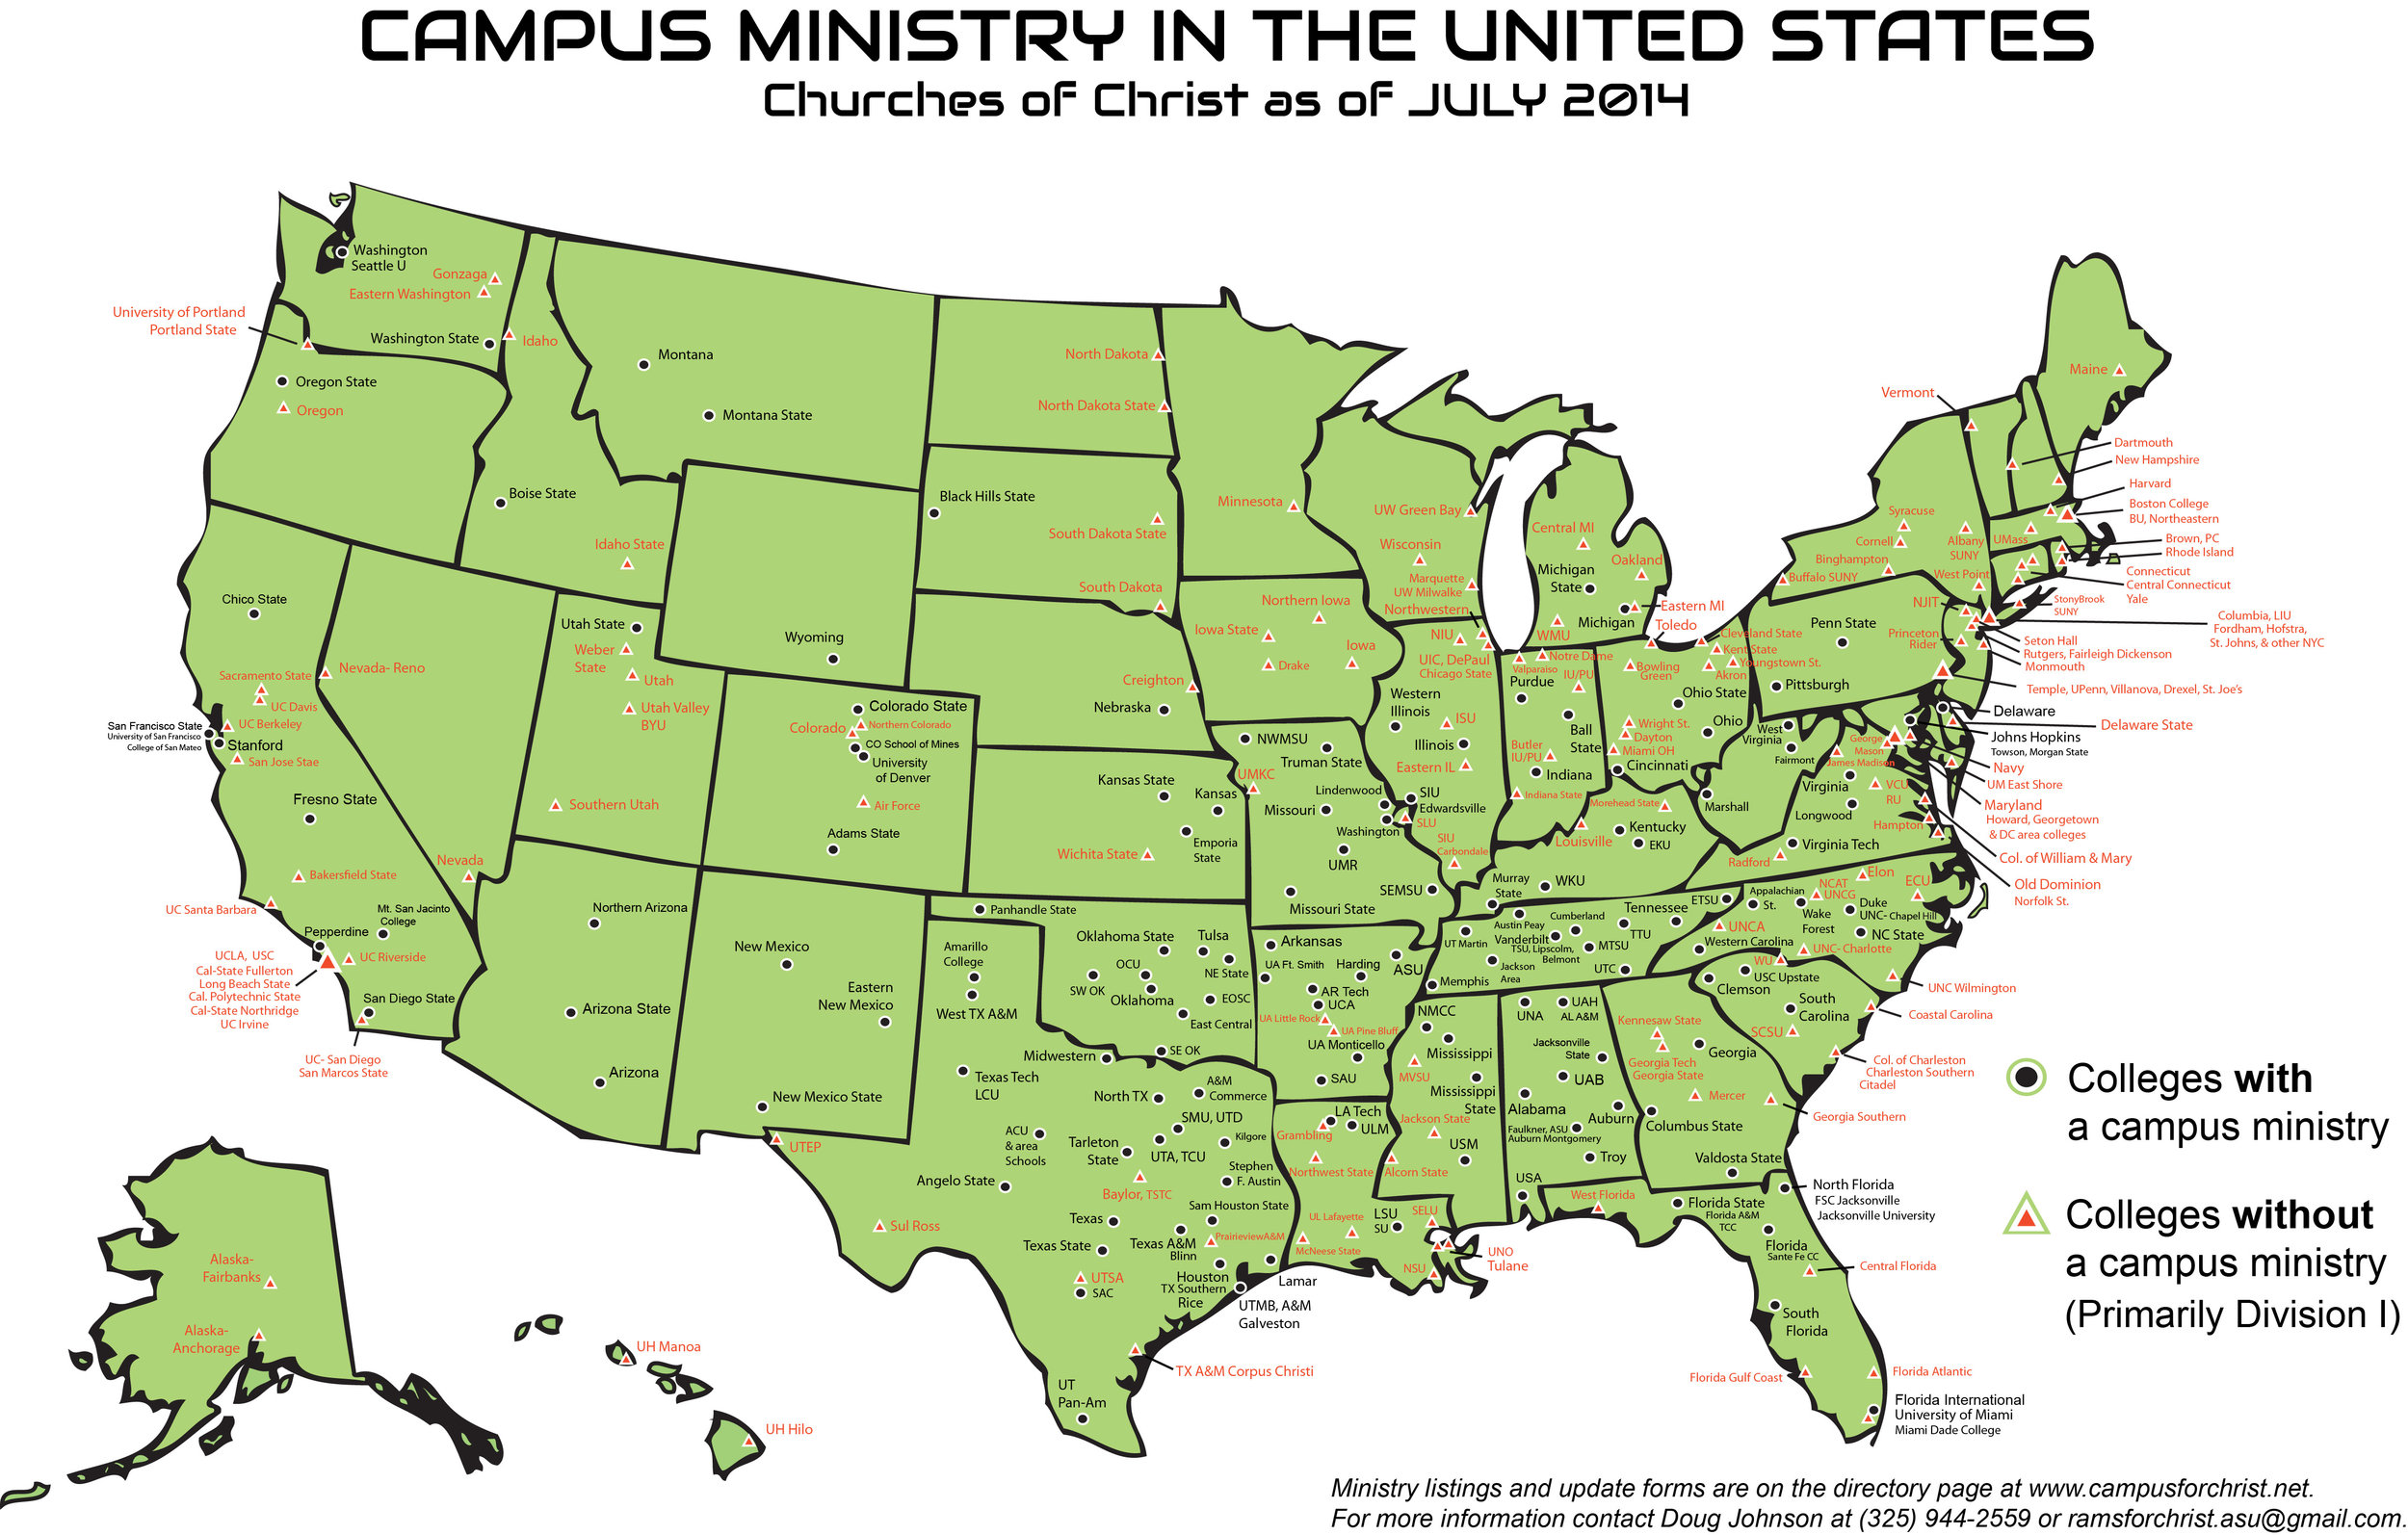 National Campus Ministry Map- With & Without.jpg